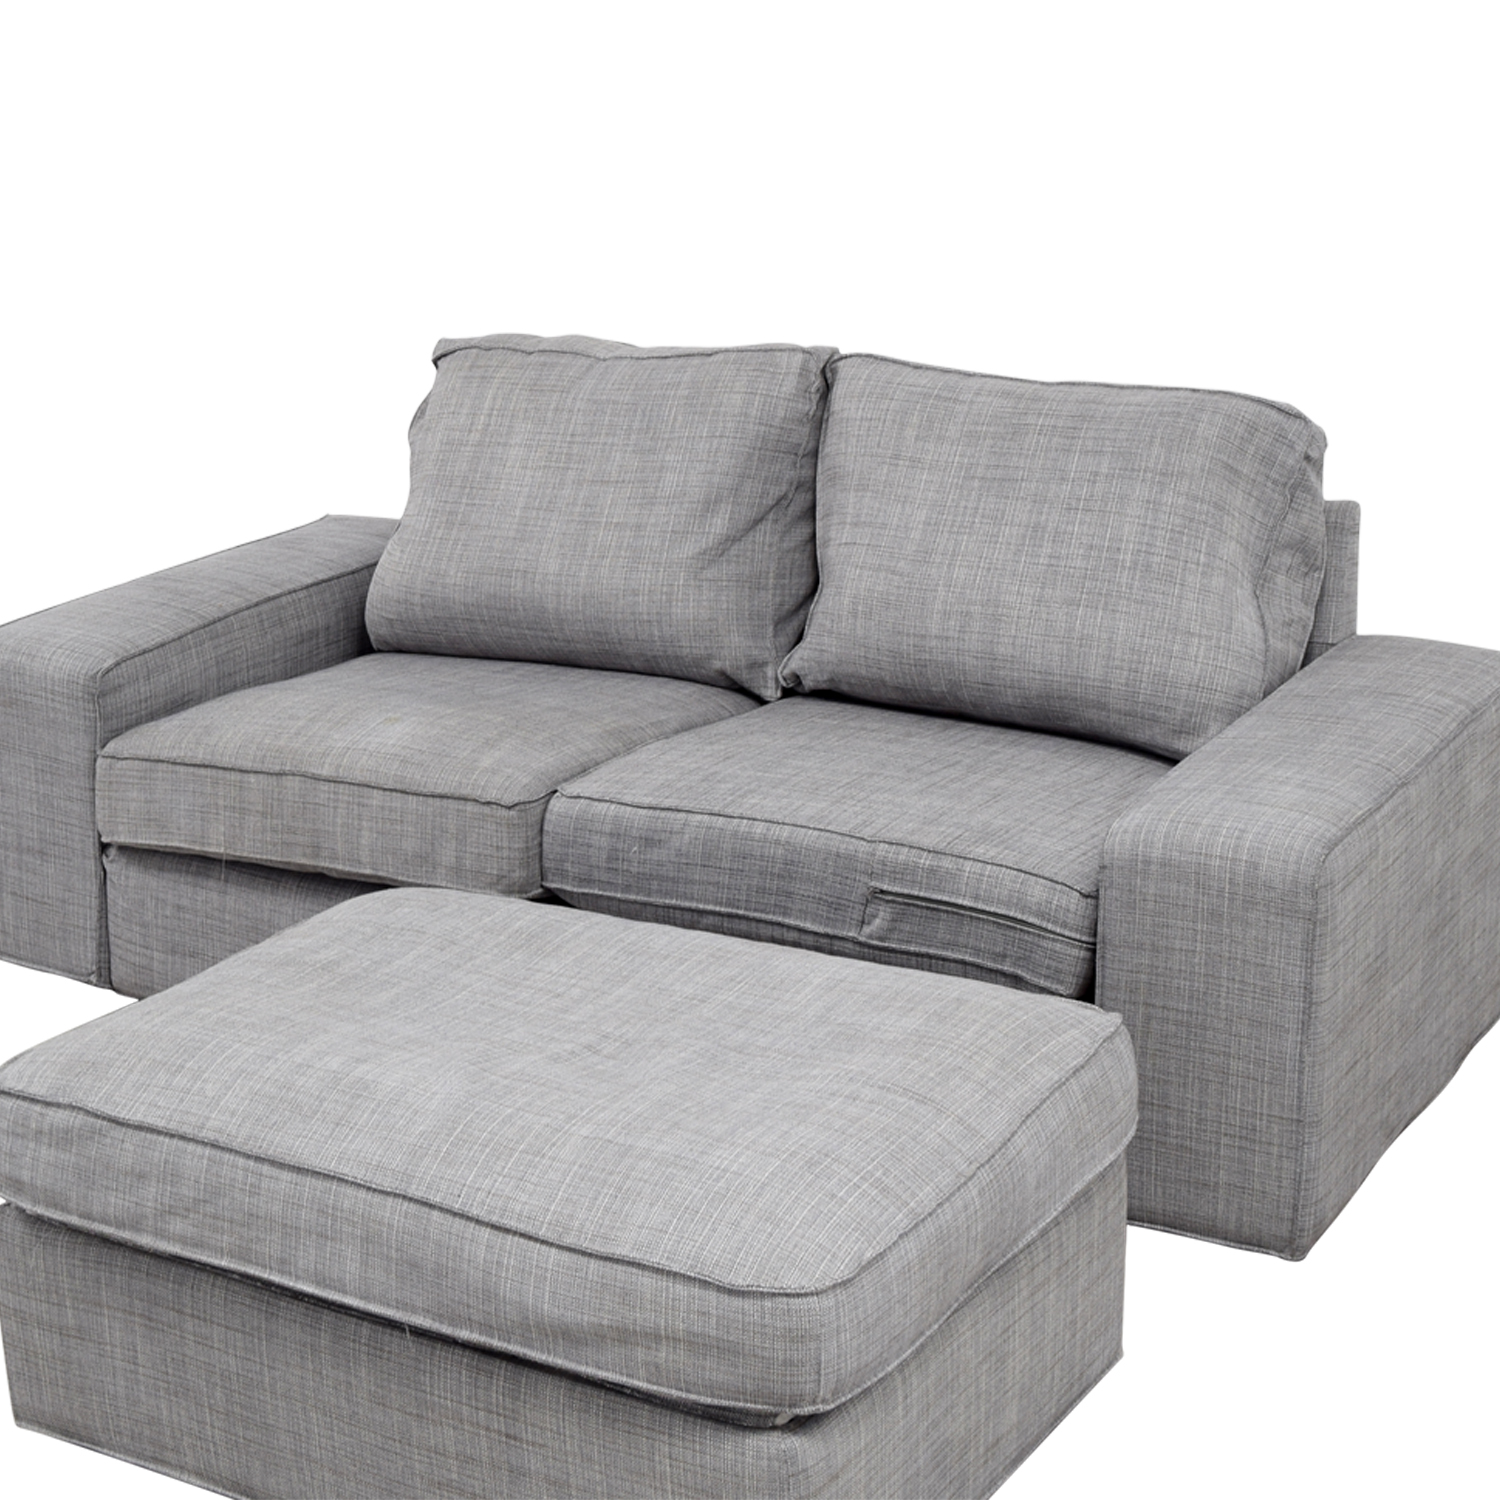 ... Buy IKEA Kivik Gray Sofa And Ottoman IKEA Sectionals ...